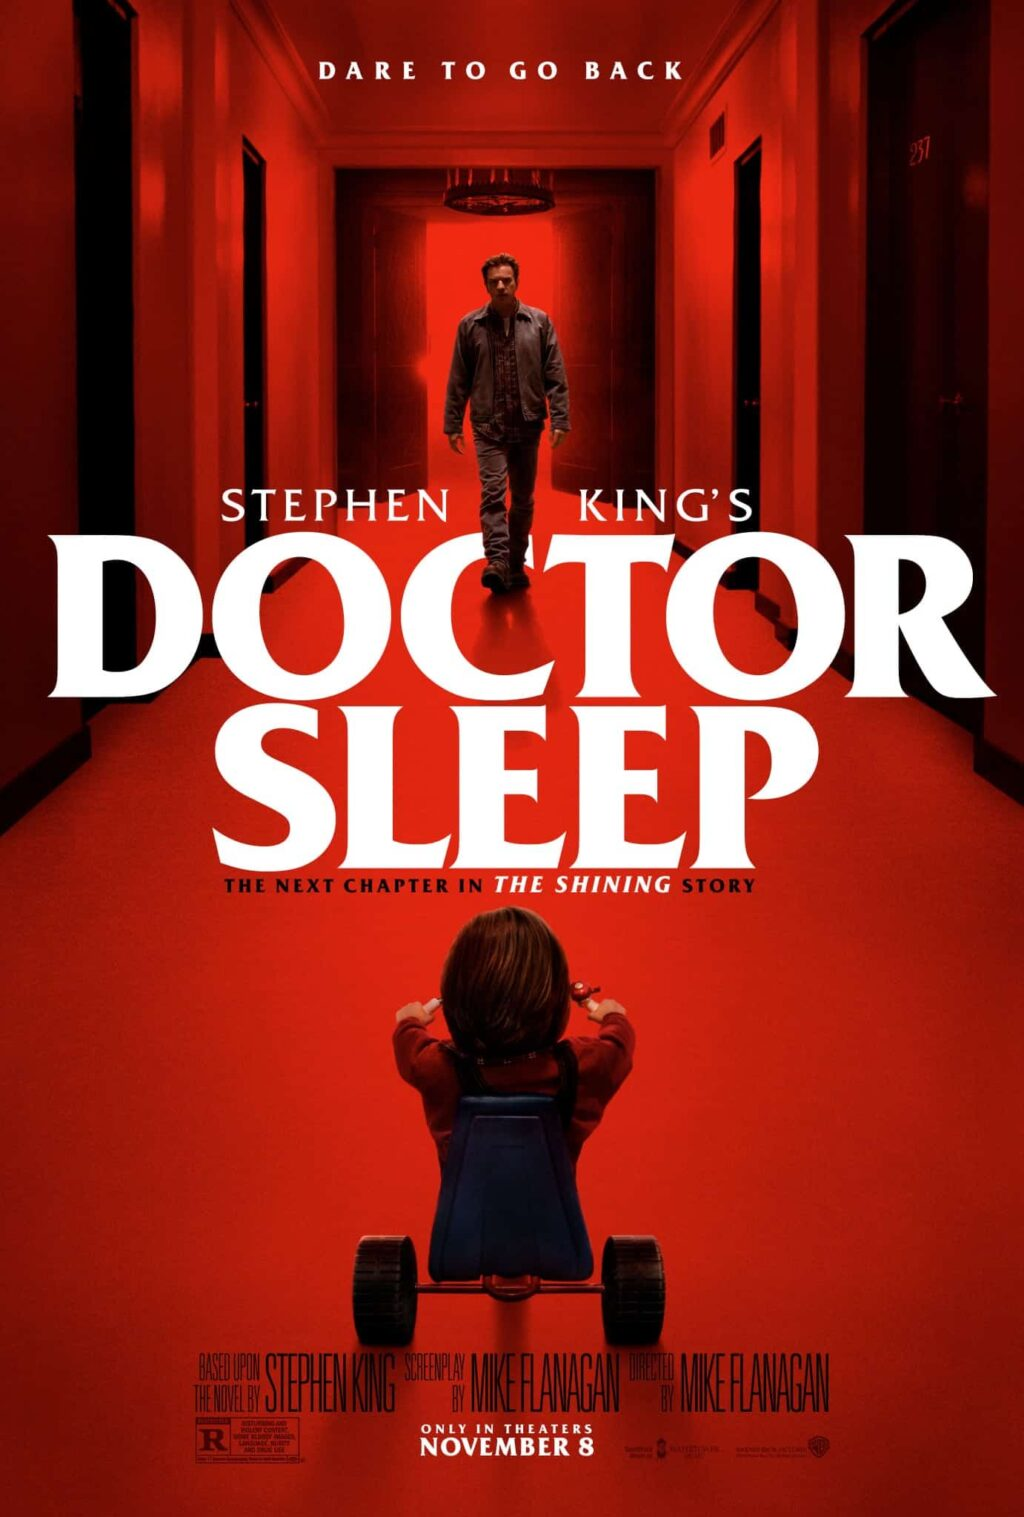 MV5BYmY3NGJlYTItYmQ4OS00ZTEwLWIzODItMjMzNWU2MDE0NjZhXkEyXkFqcGdeQXVyMzQzMDA3MTI@. V1  1024x1517 - DOCTOR SLEEP 3-Hour Director's Cut Now Available to Stream